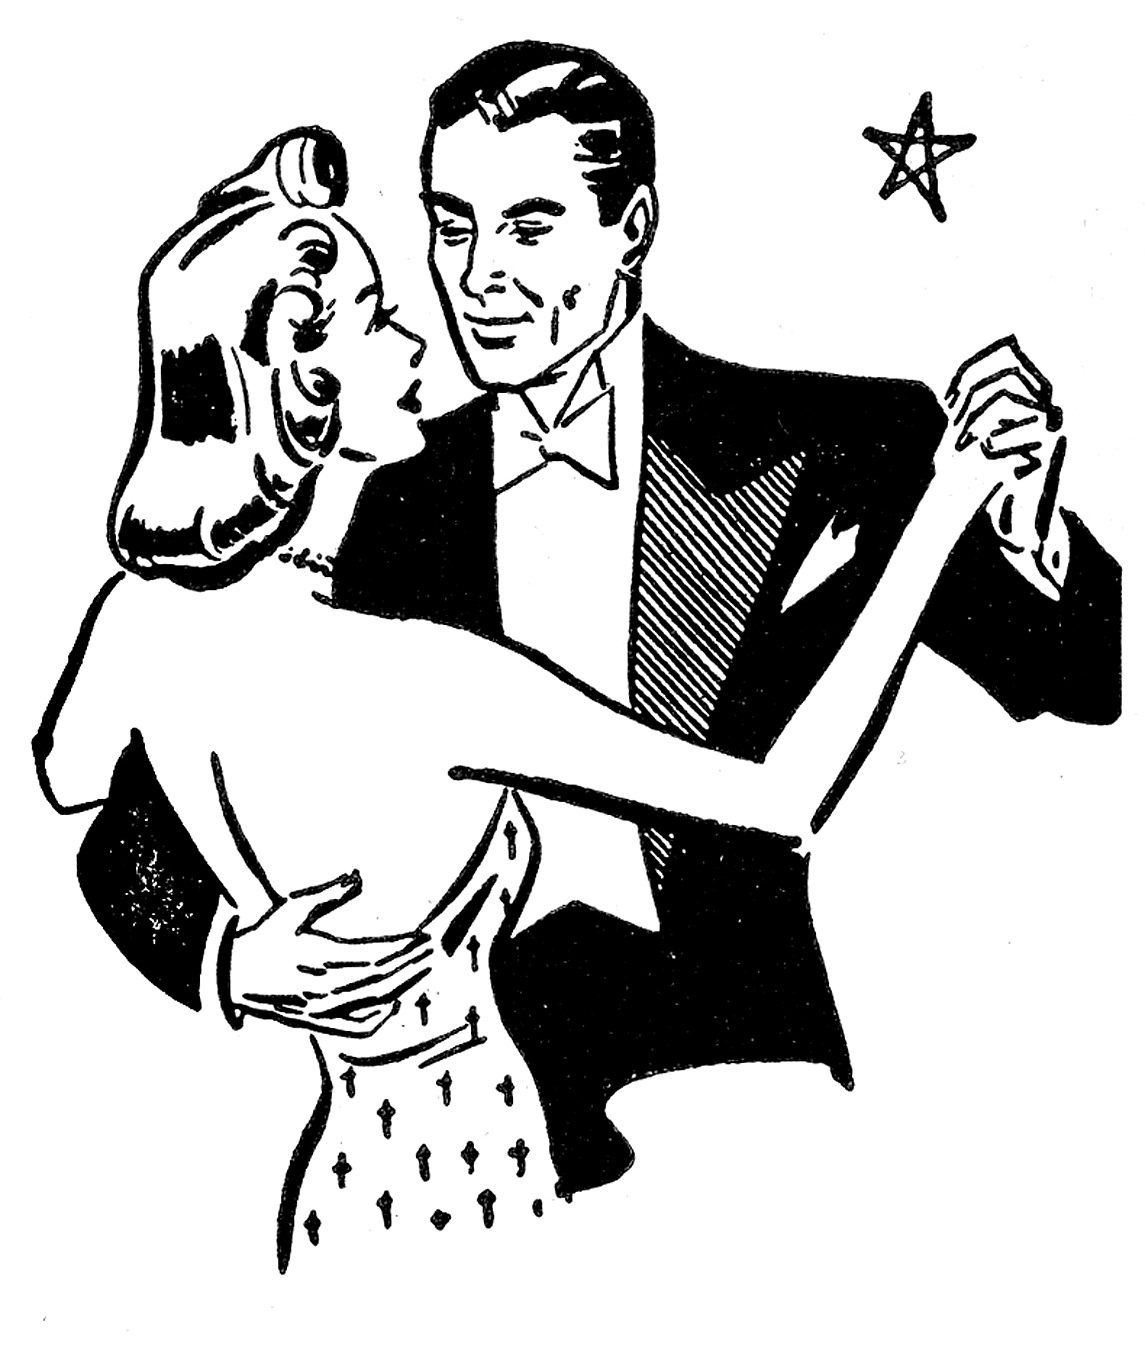 Dancing clipart vintage. Retro clip art couples